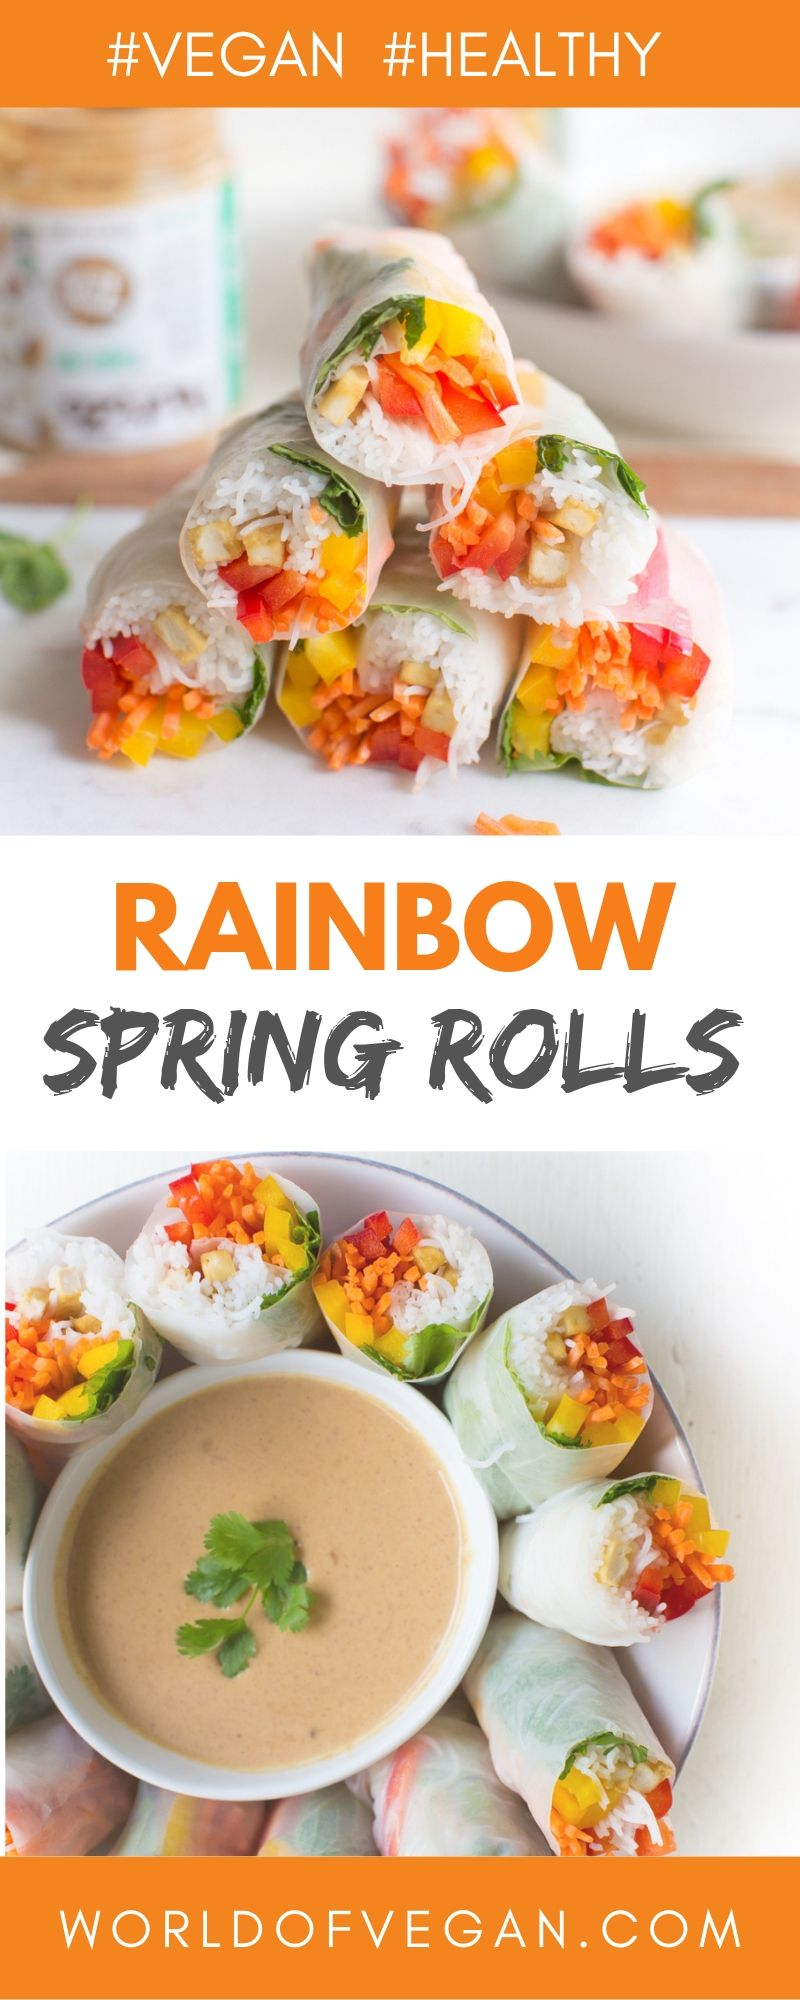 Rainbow Spring Rolls With Peanut Dipping Sauce | World of Vegan | WorldofVegan.com #vegan #vegetarian #healthy #lunch